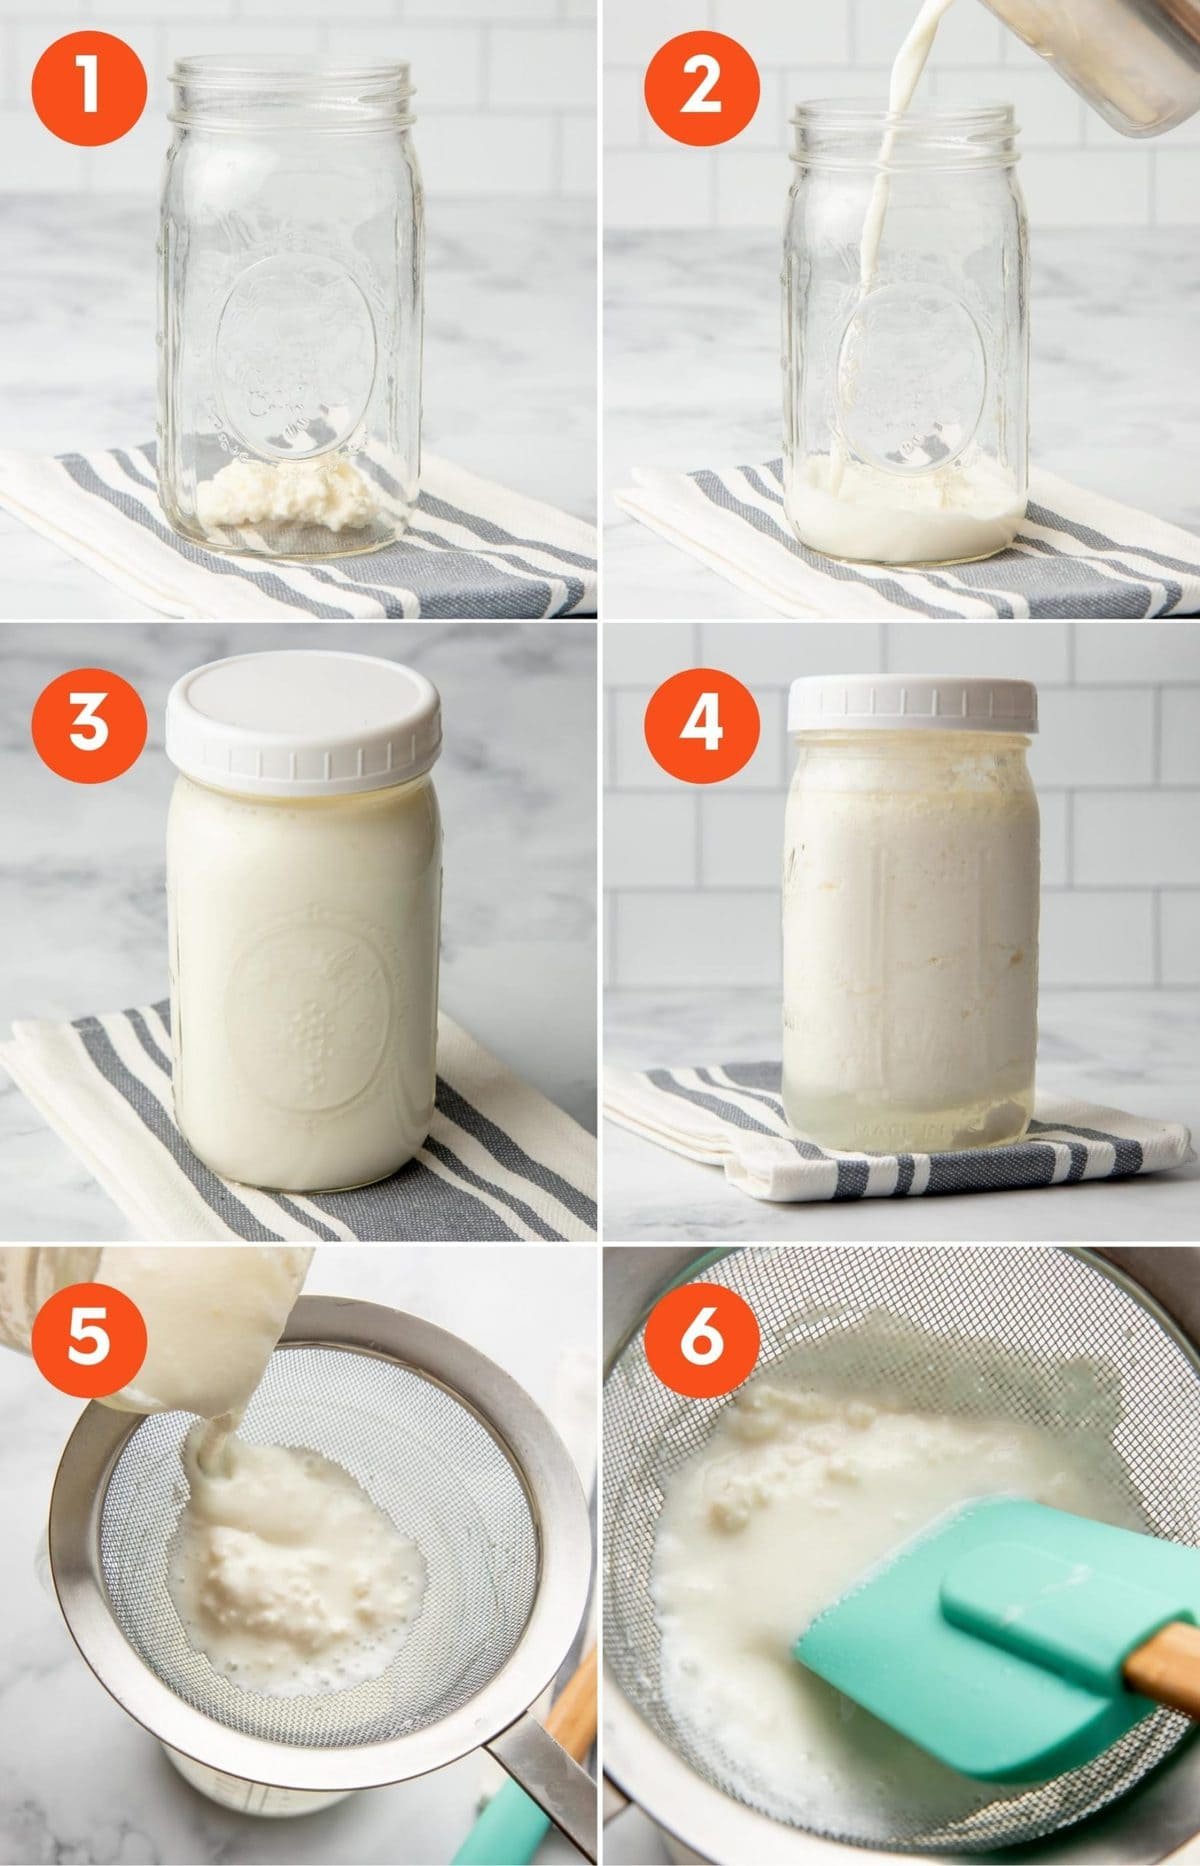 Collage of images showing how to make kefir in six steps.